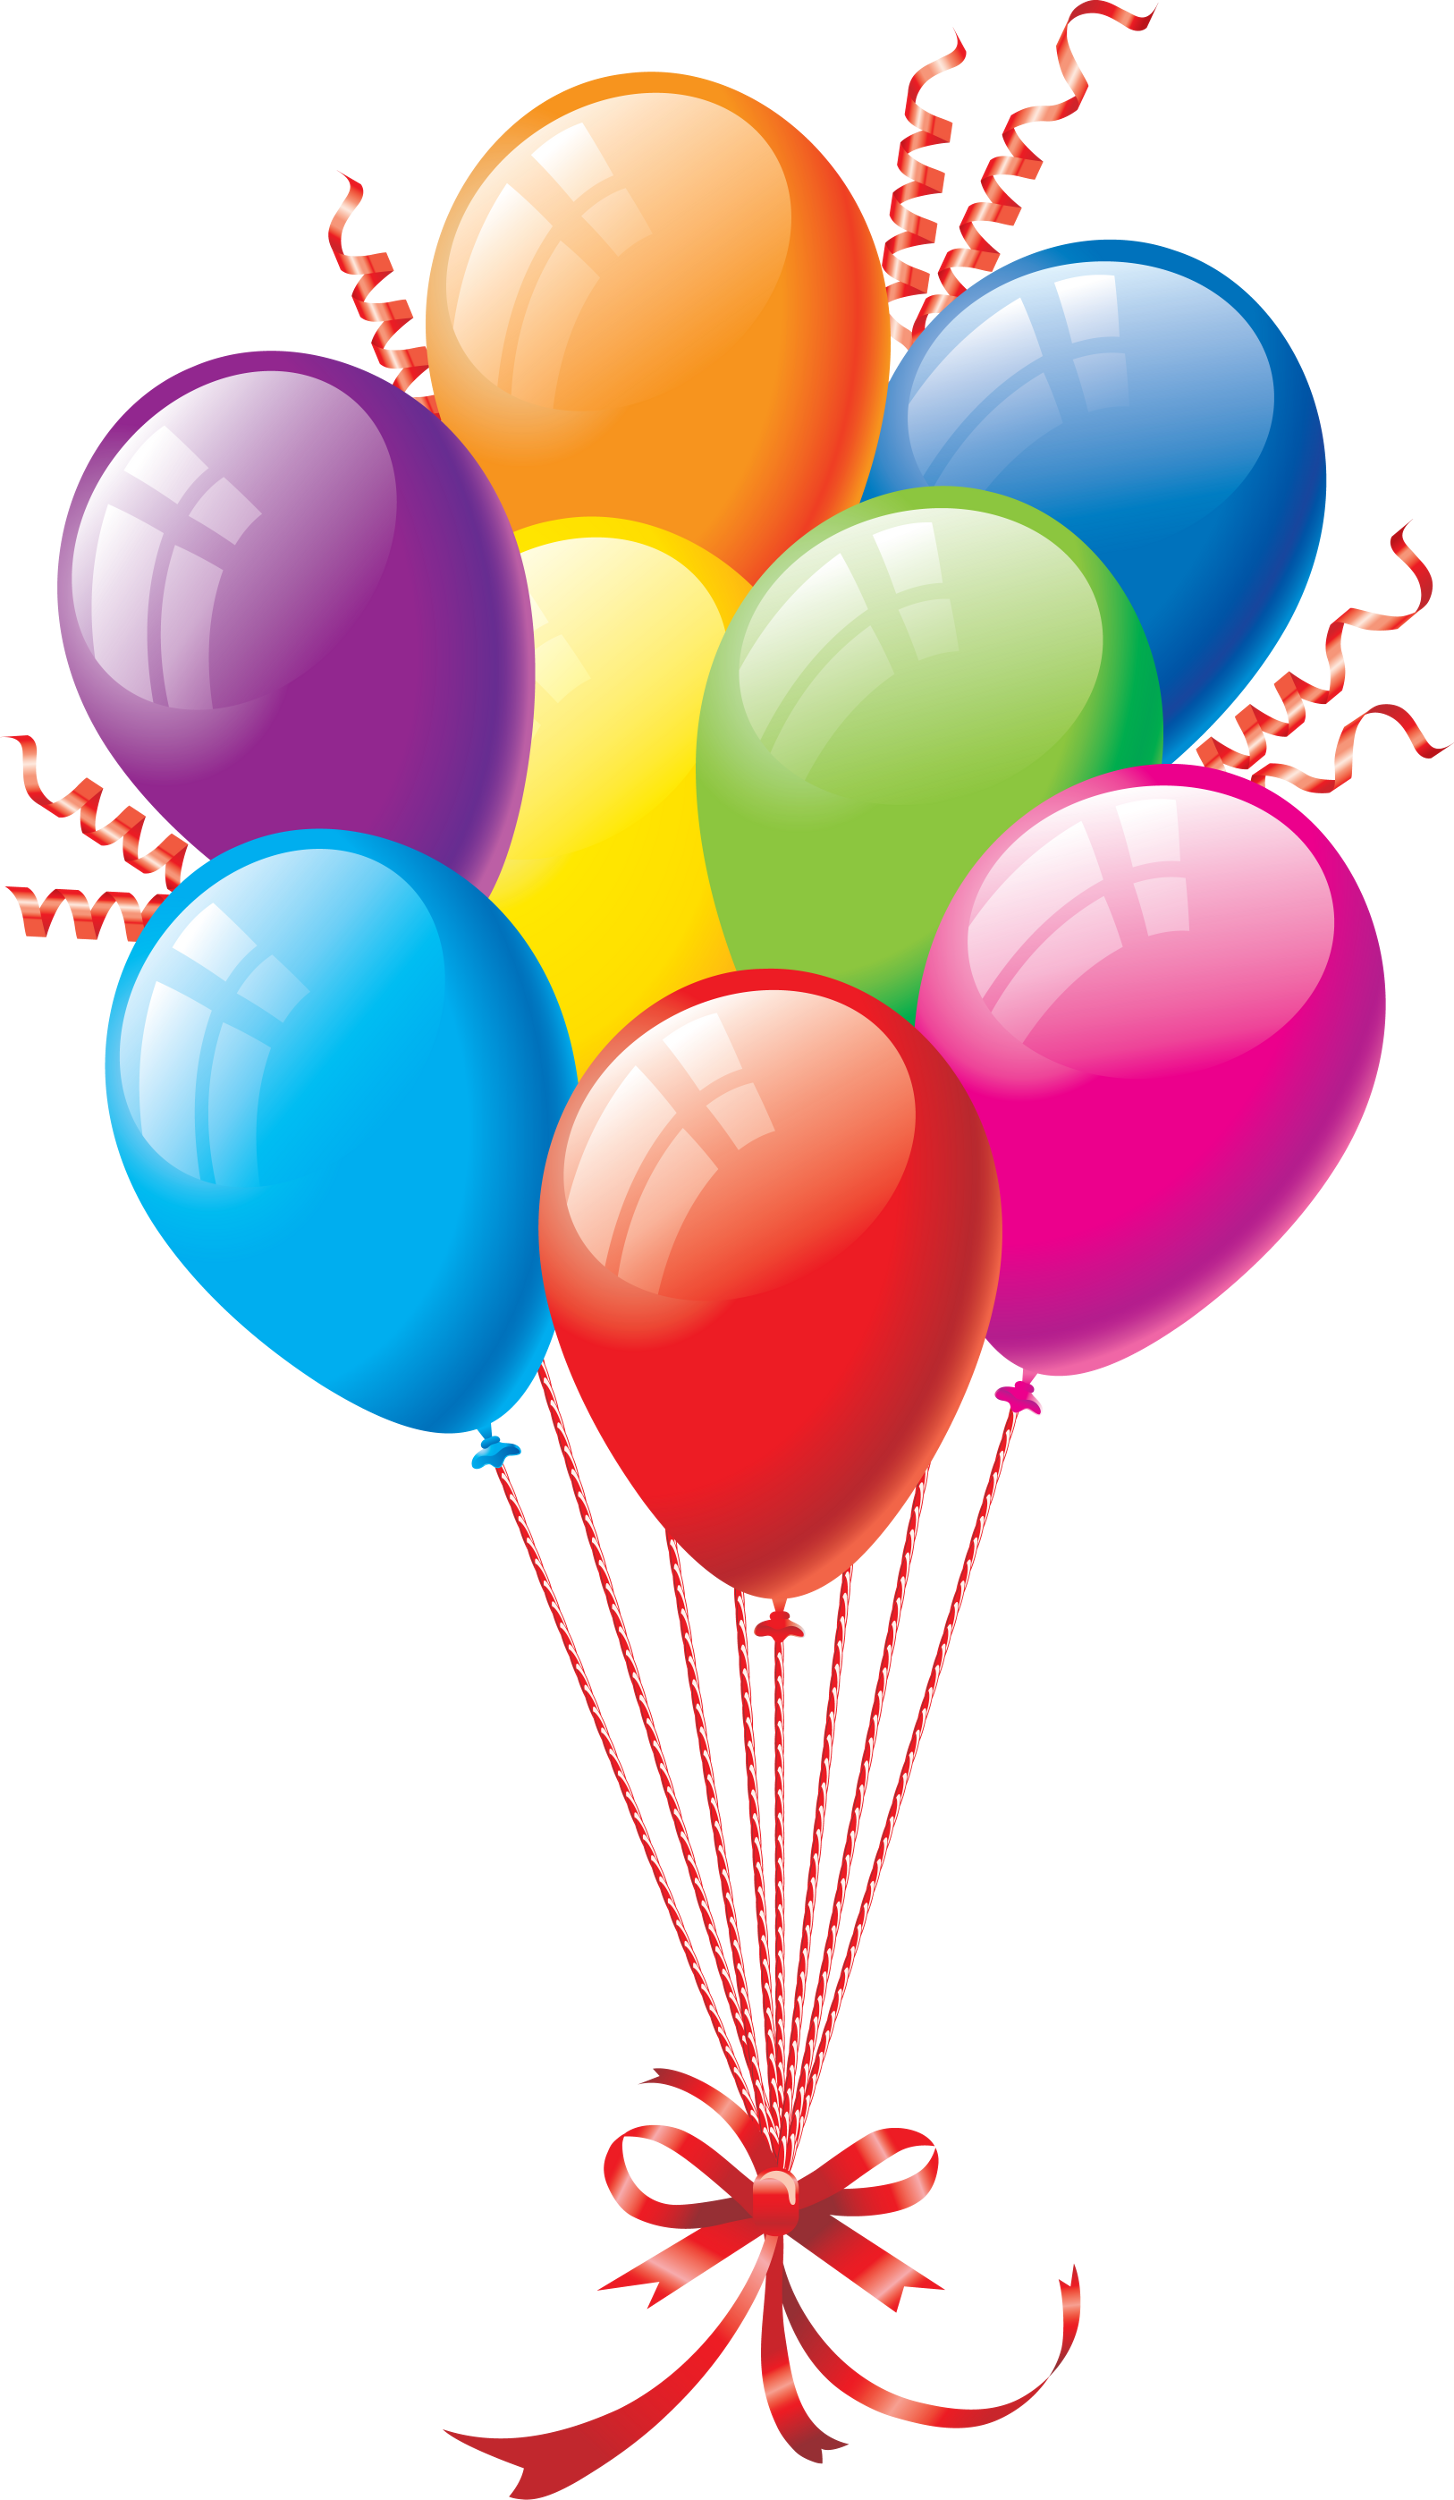 Balloon bouquets clipart clipart black and white Free Balloon Bundle Cliparts, Download Free Clip Art, Free Clip Art ... clipart black and white